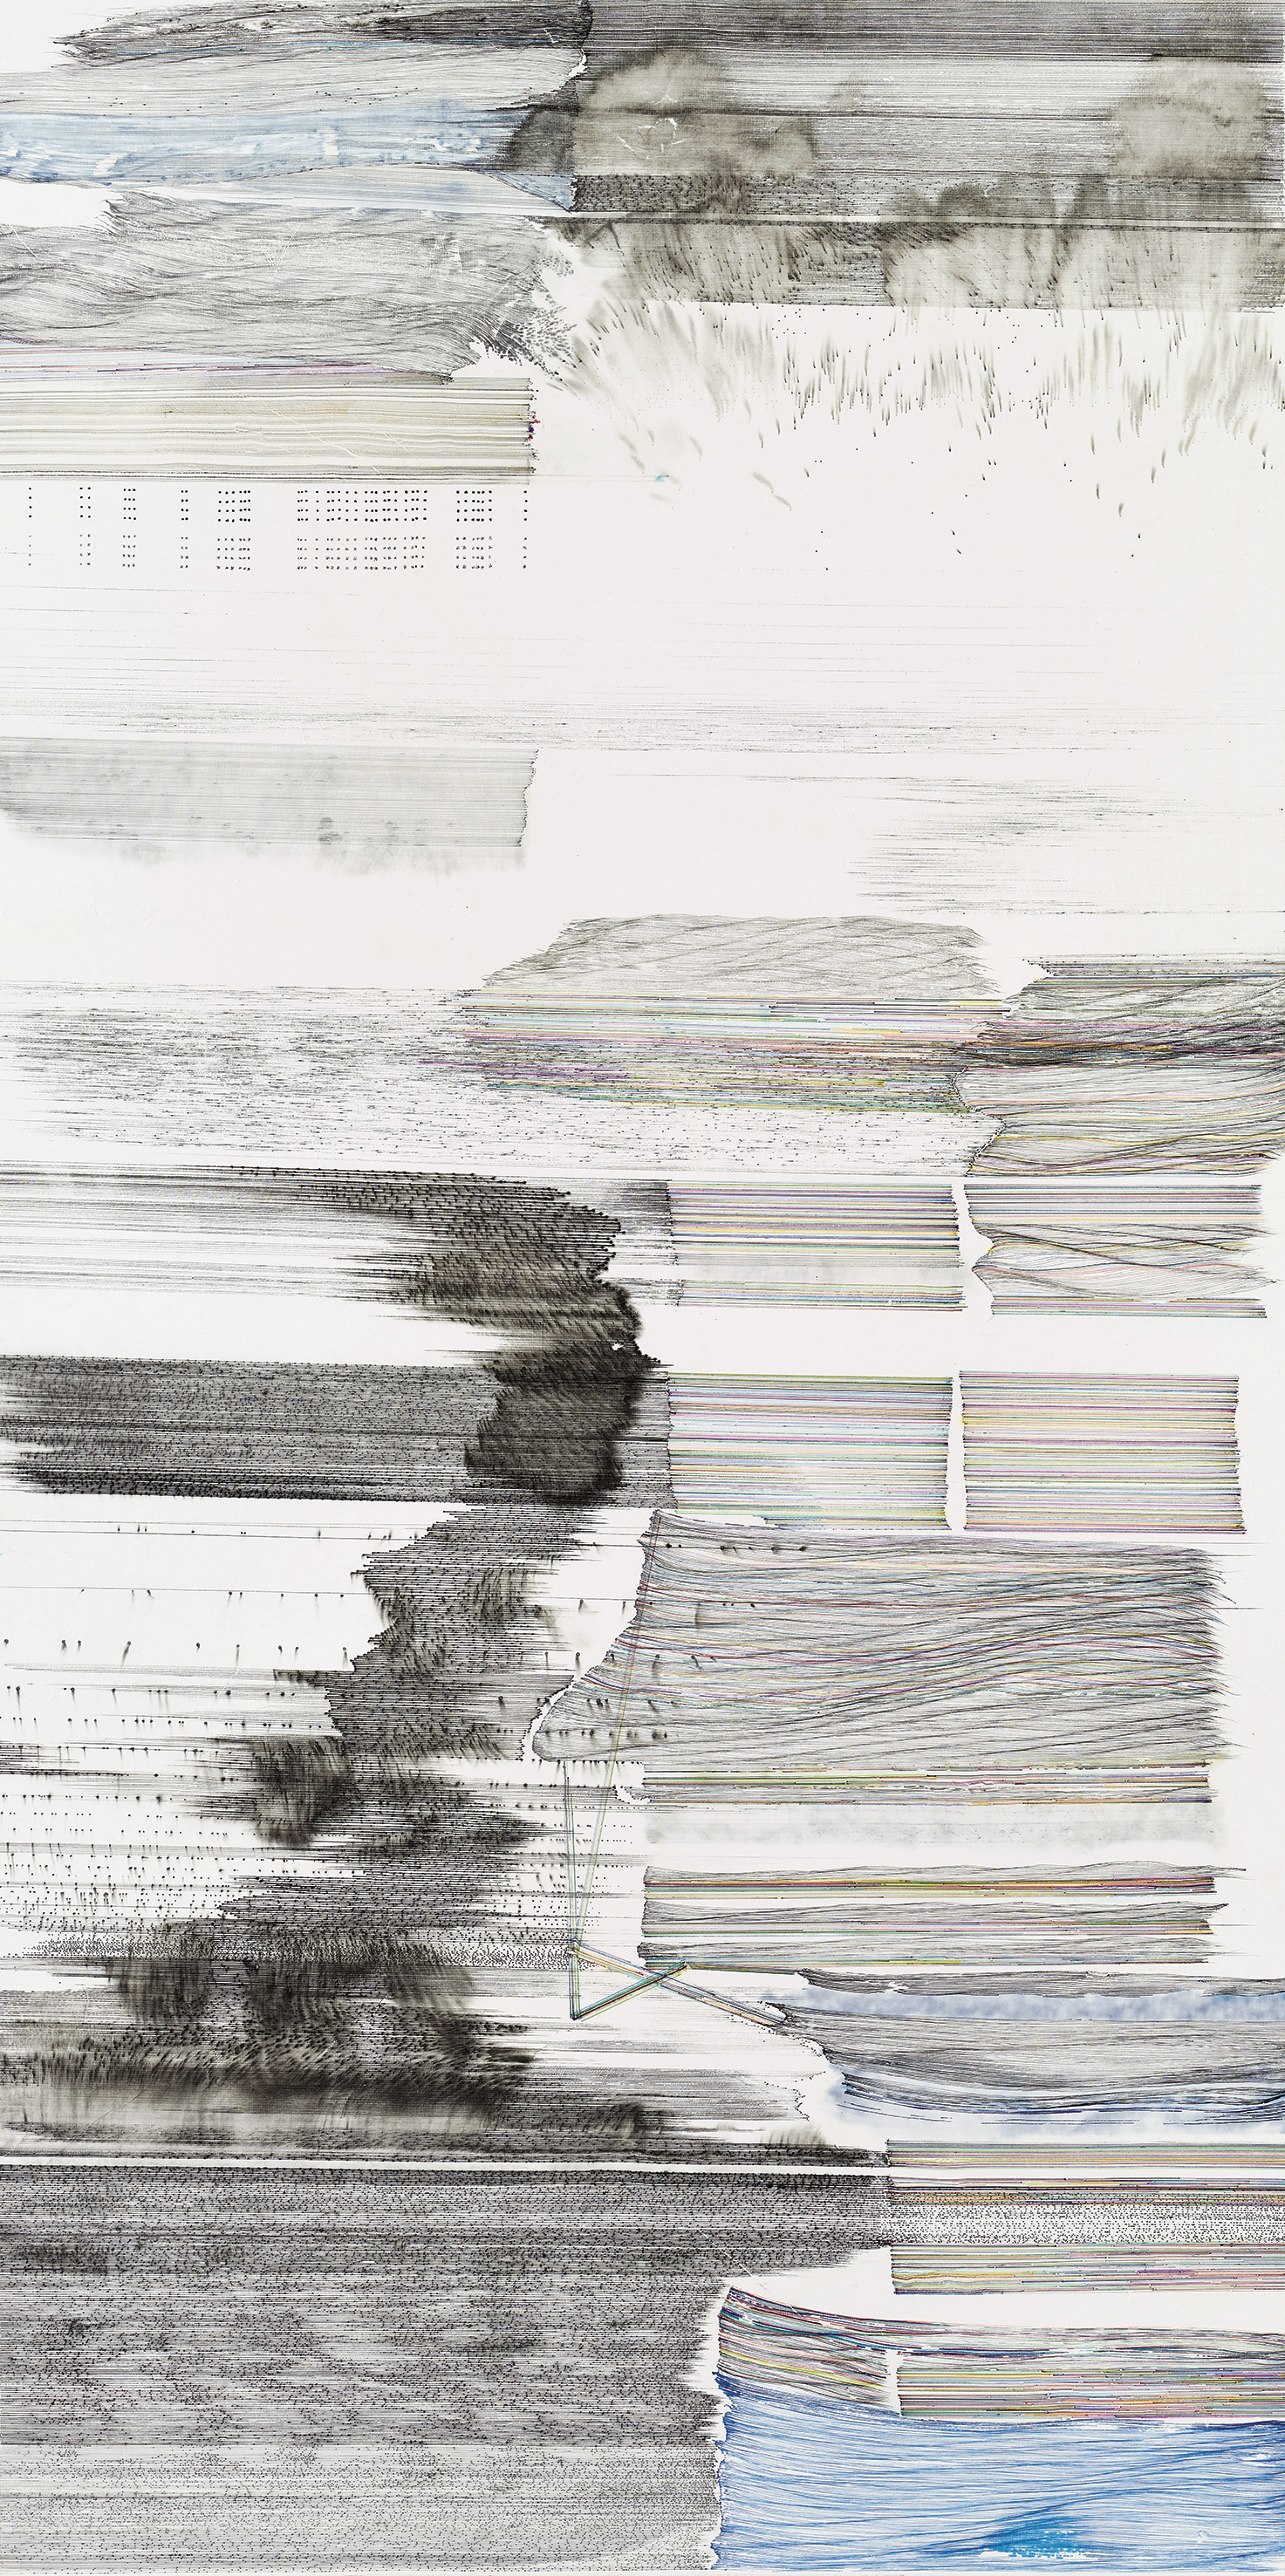 Same Line Twice 15, 70 cm (width) x 138 cm (height), pigmented ink, ballpoint pen and brush on paper, 2017